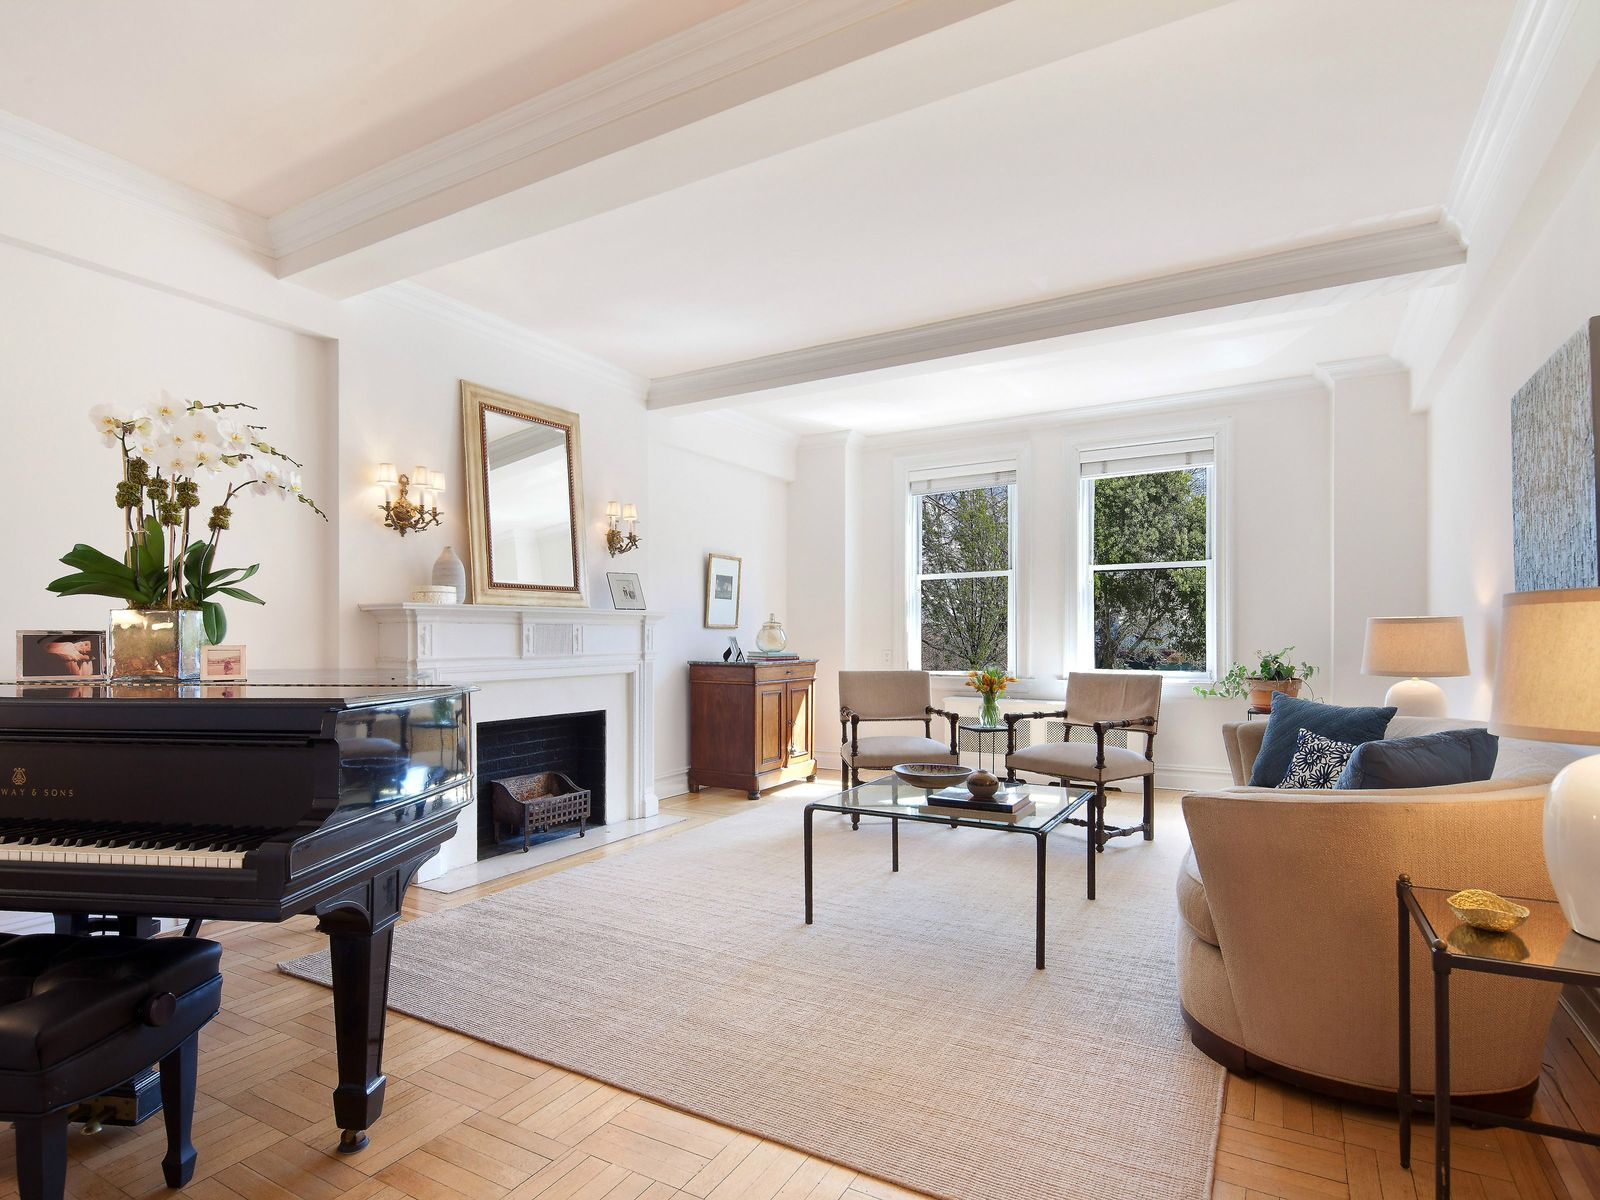 65 Central Park West, New York NY Cooperative - New York City Real Estate